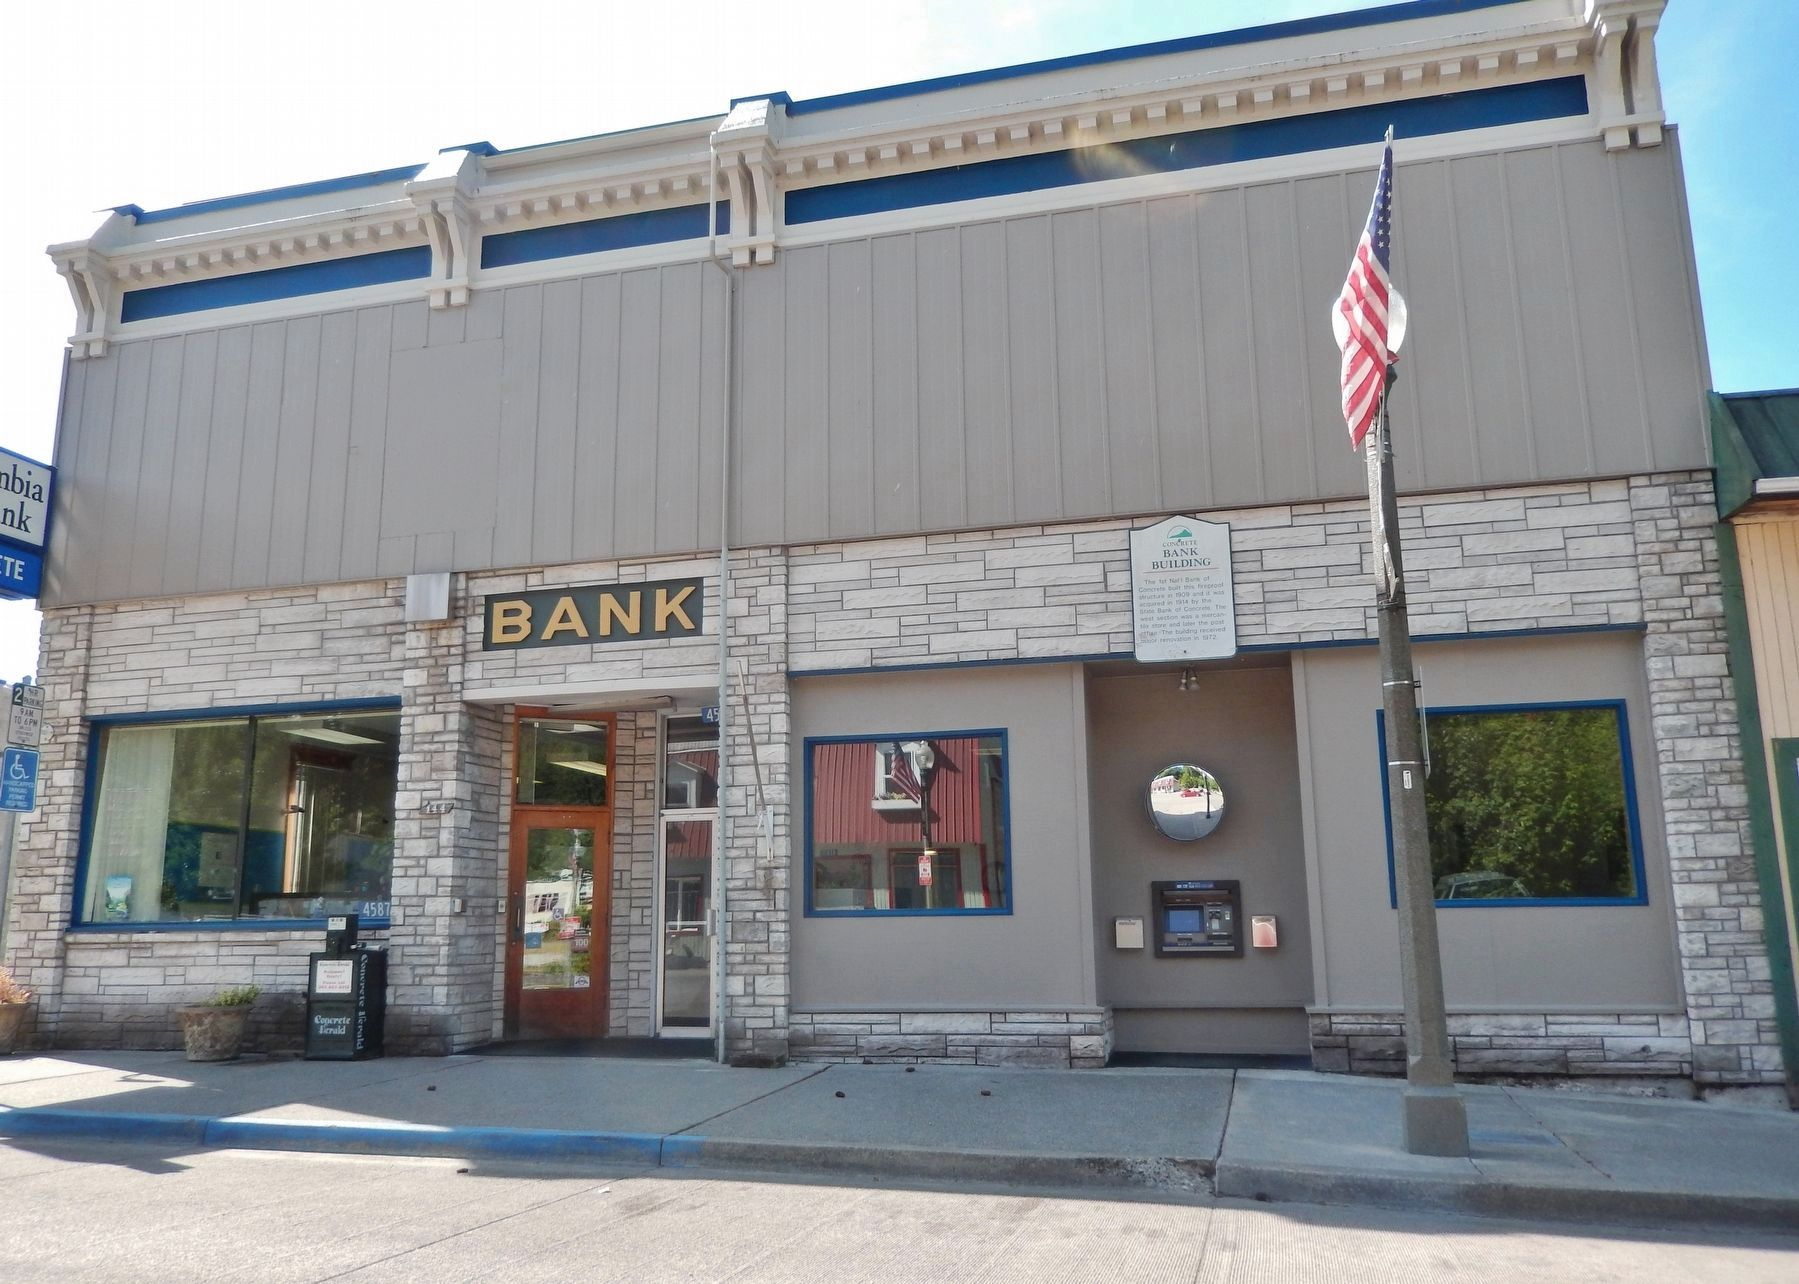 Concrete Bank Building Marker (<i>wide view; marker visible on wall above ATM</i>) image. Click for full size.